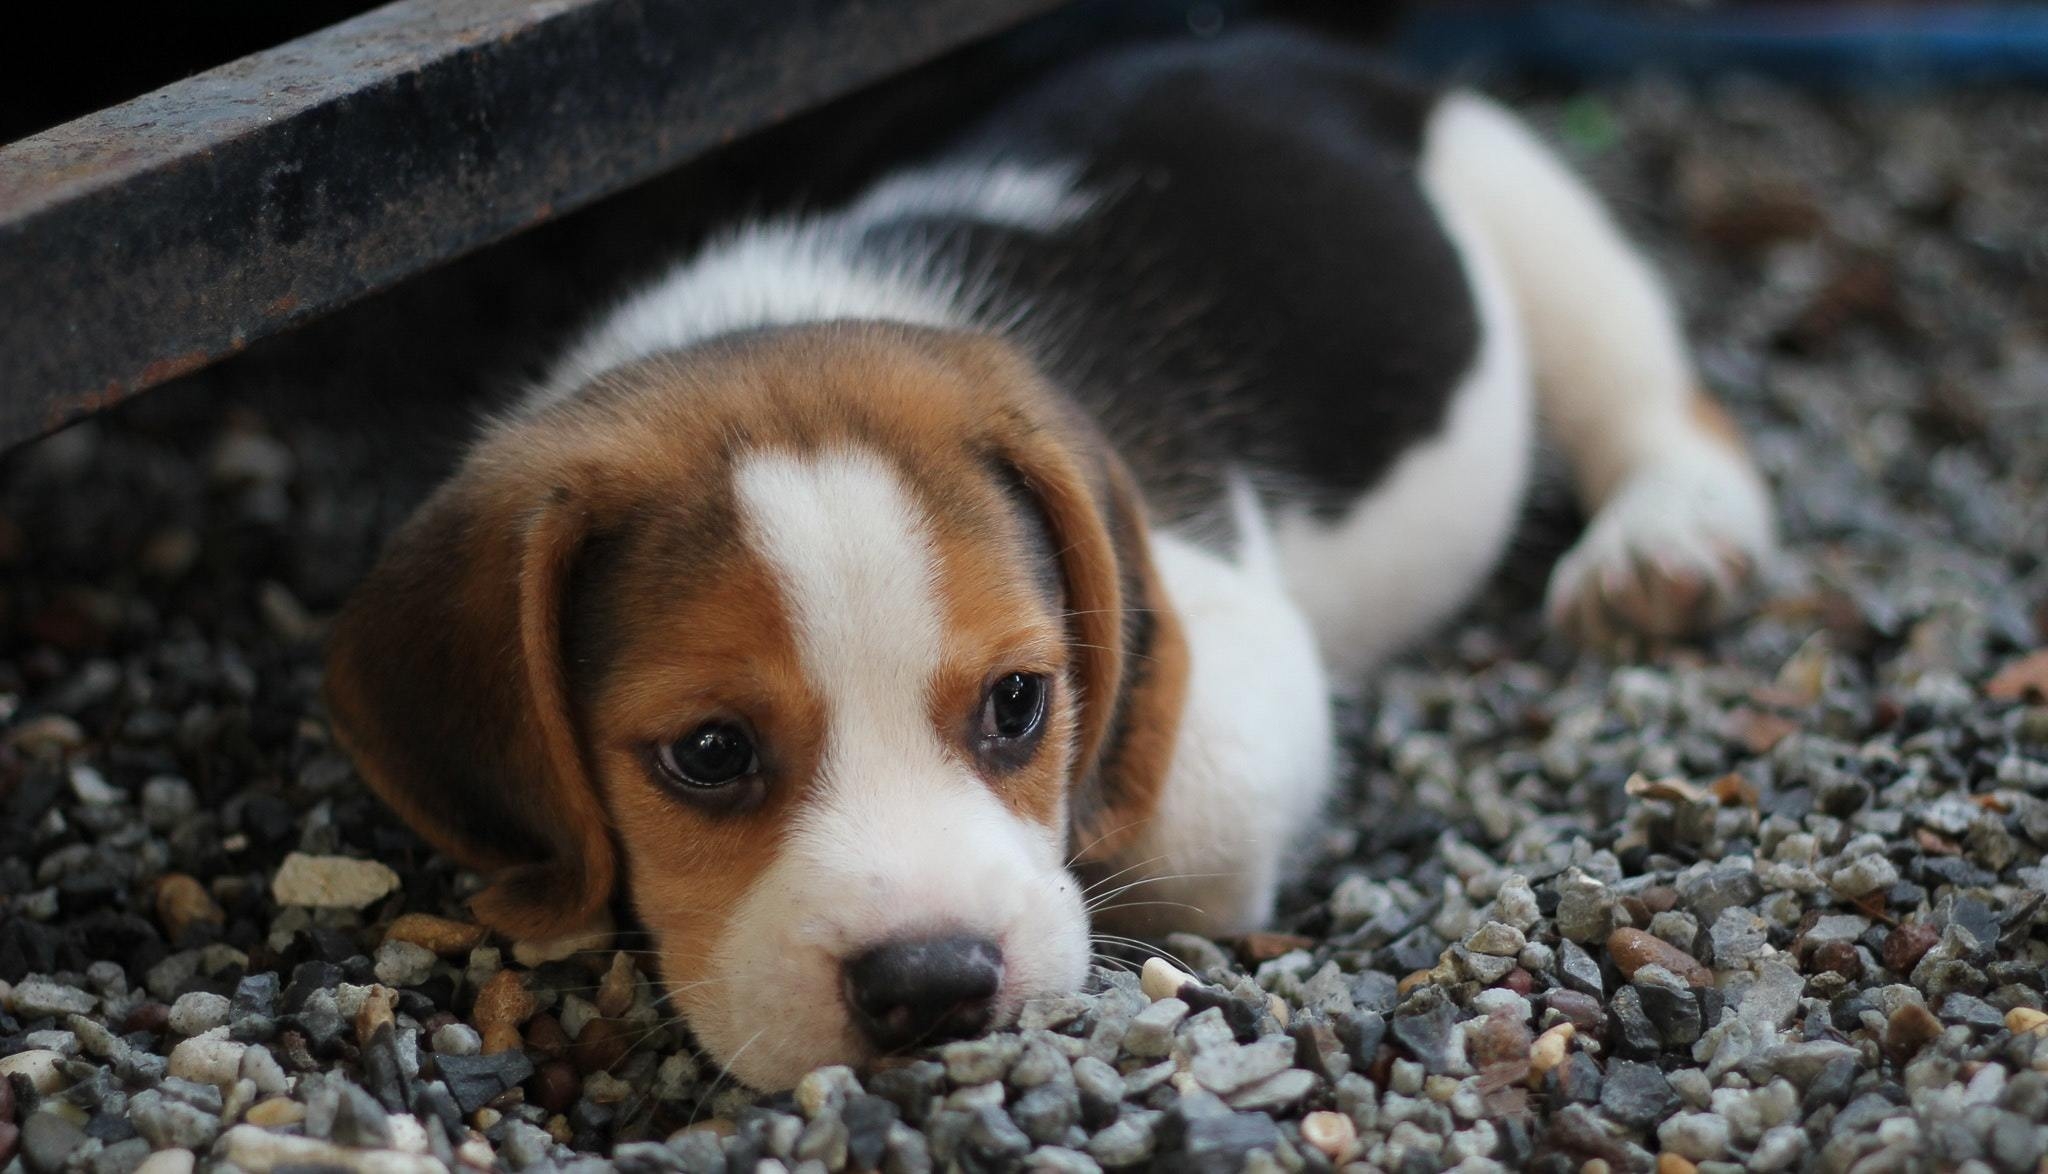 Getting a Dog For The First Time - Things To Consider